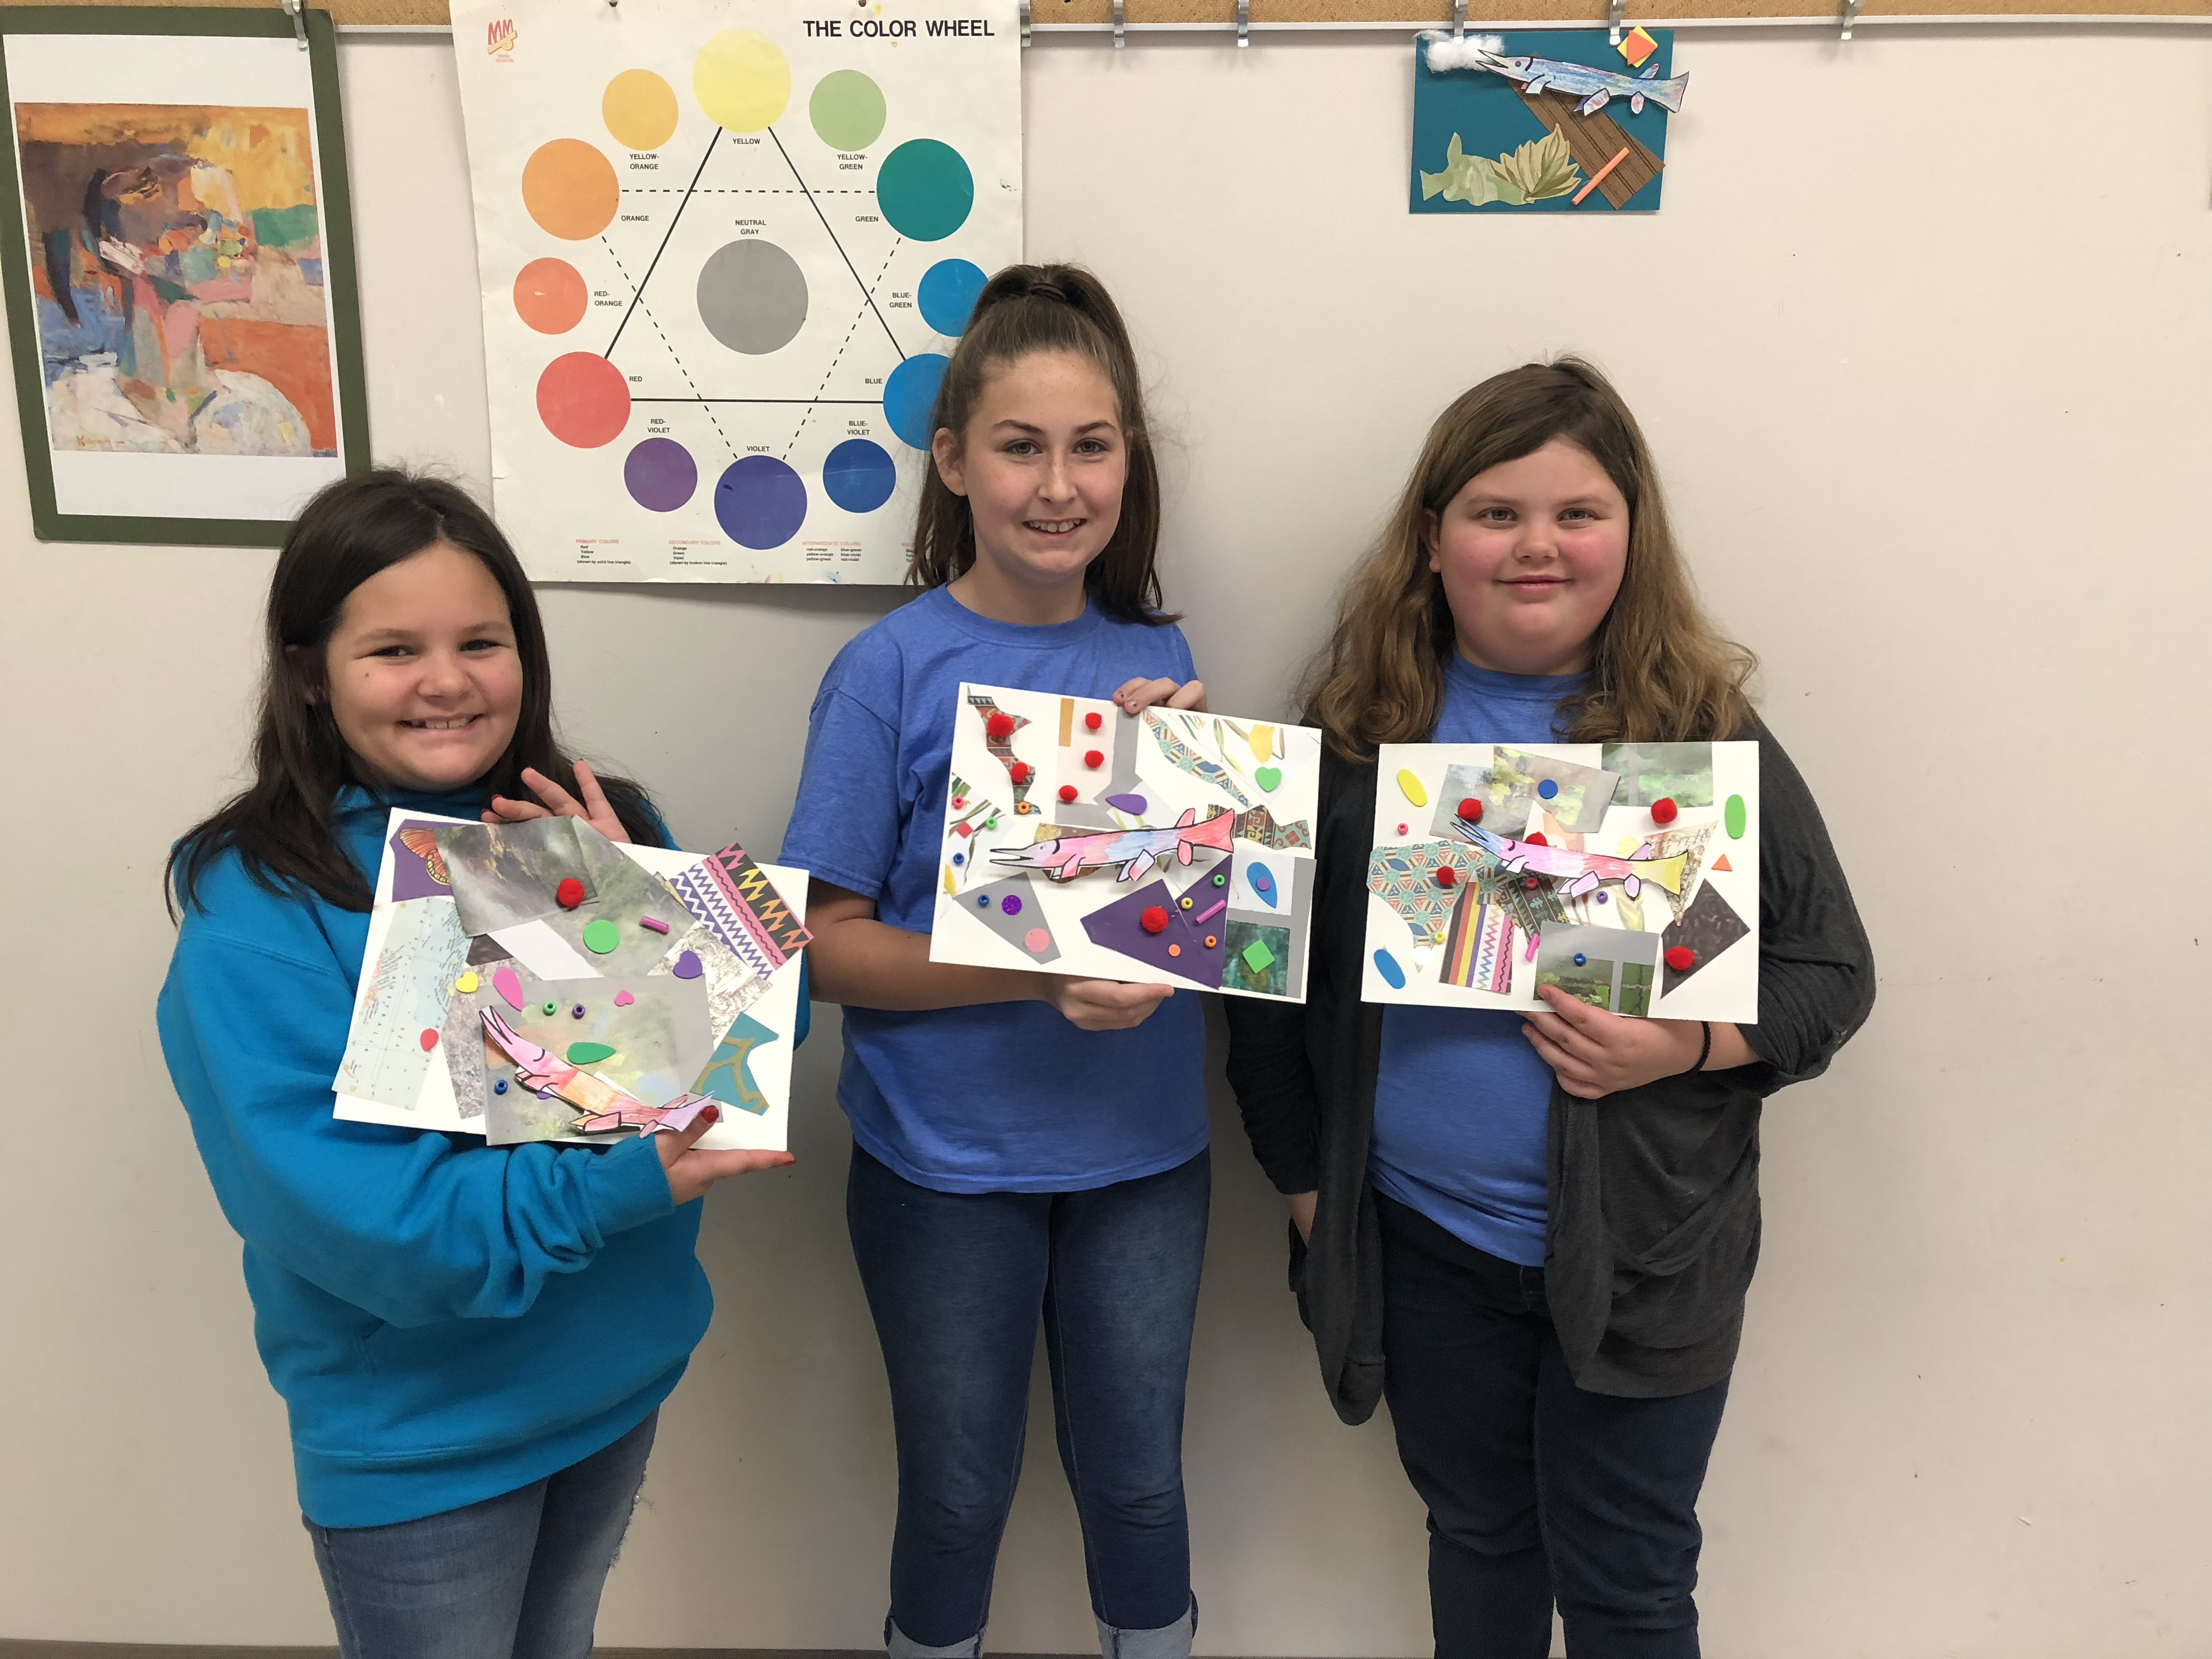 Students holding paintings